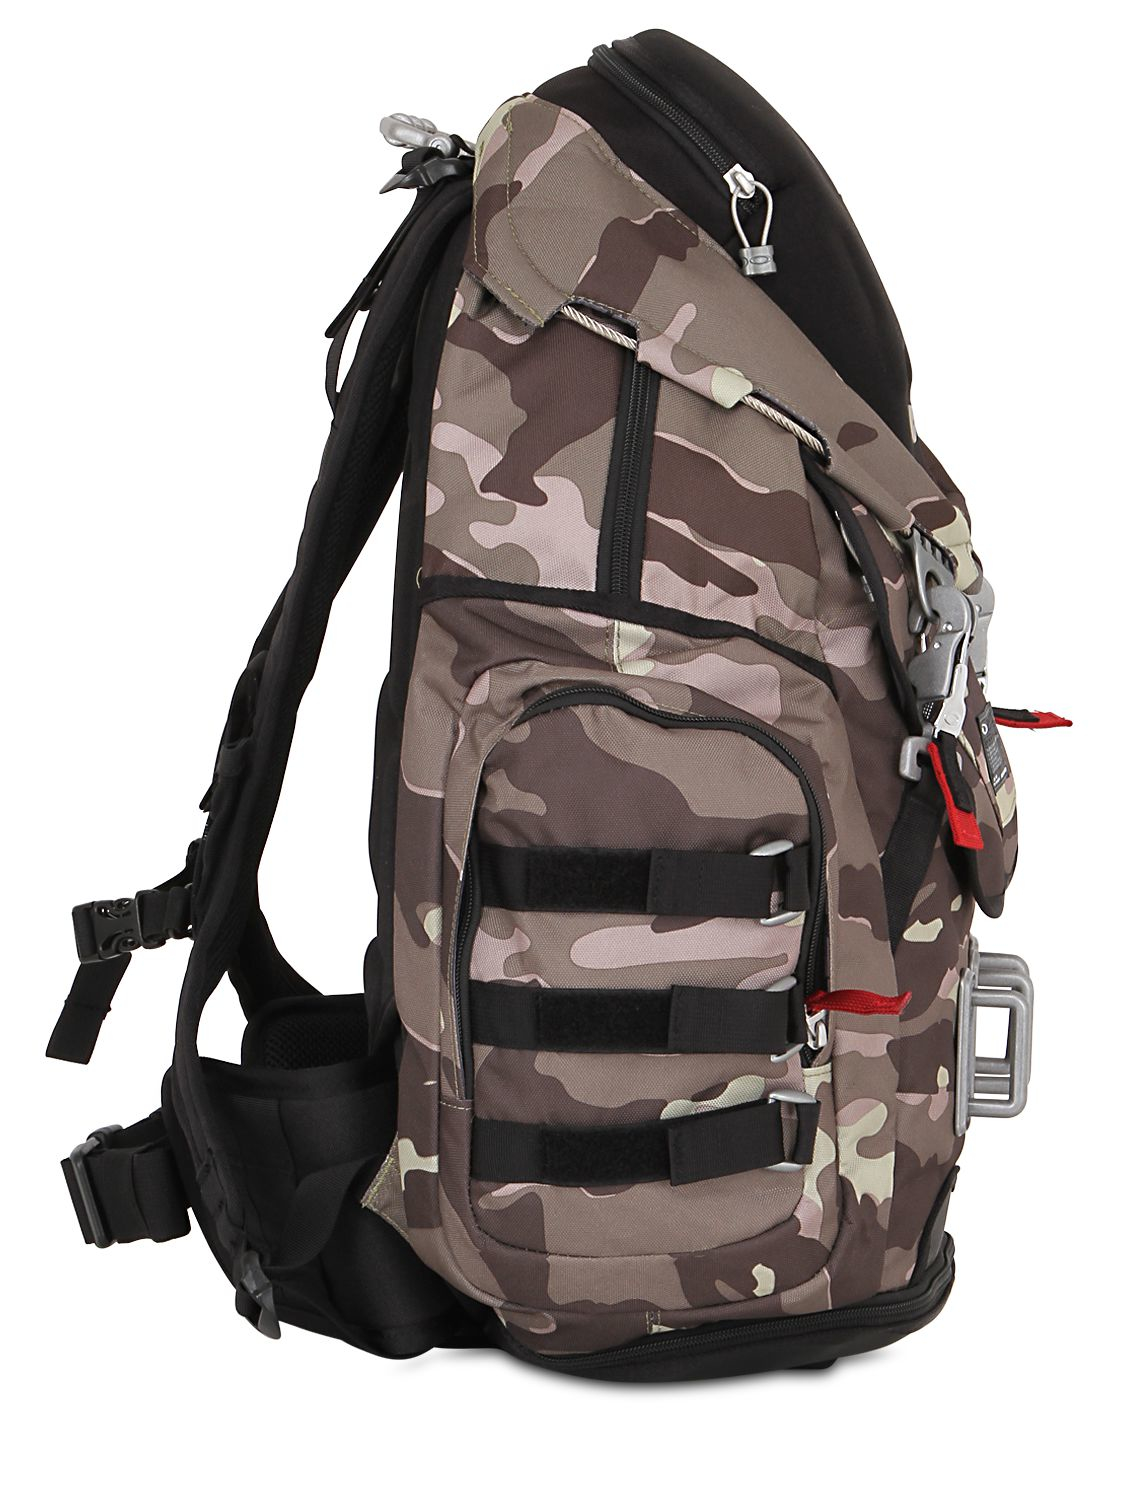 sc 1 st  Lyst & Lyst - Oakley 34l Kitchen Sink Camo Backpack in Gray for Men